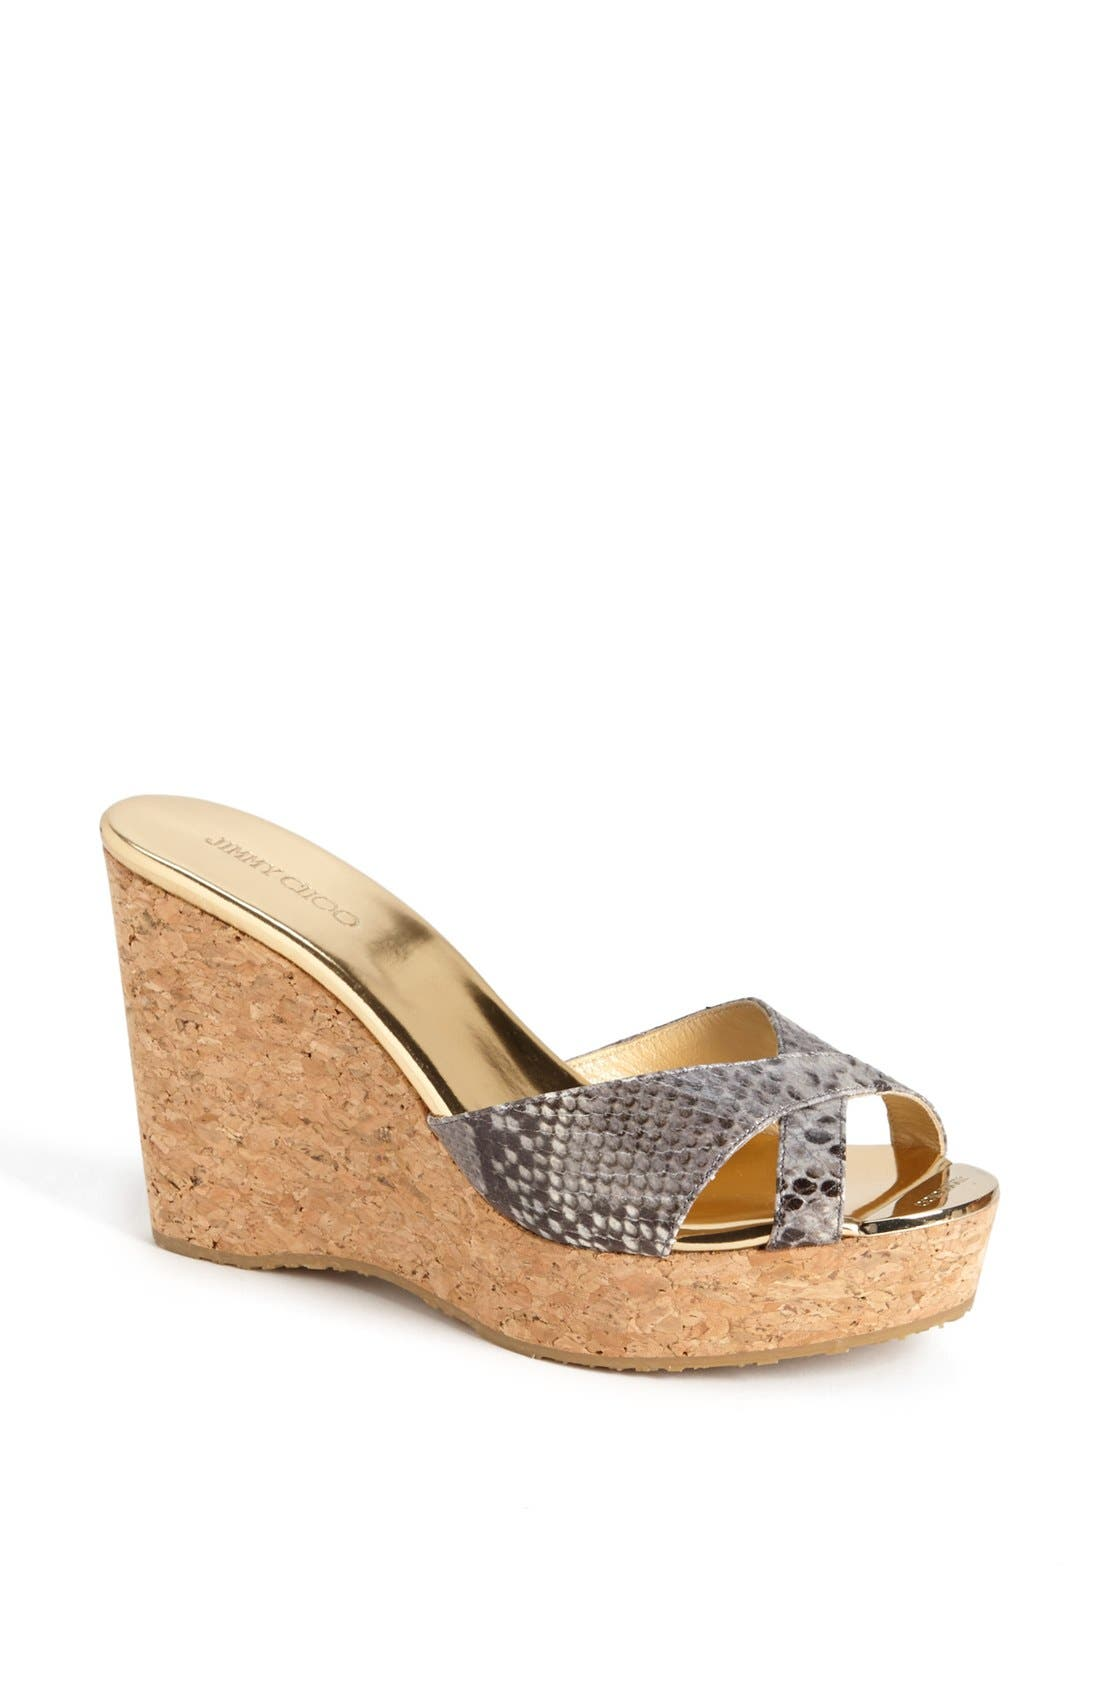 Alternate Image 1 Selected - Jimmy Choo 'Pandora' Wedge Sandal